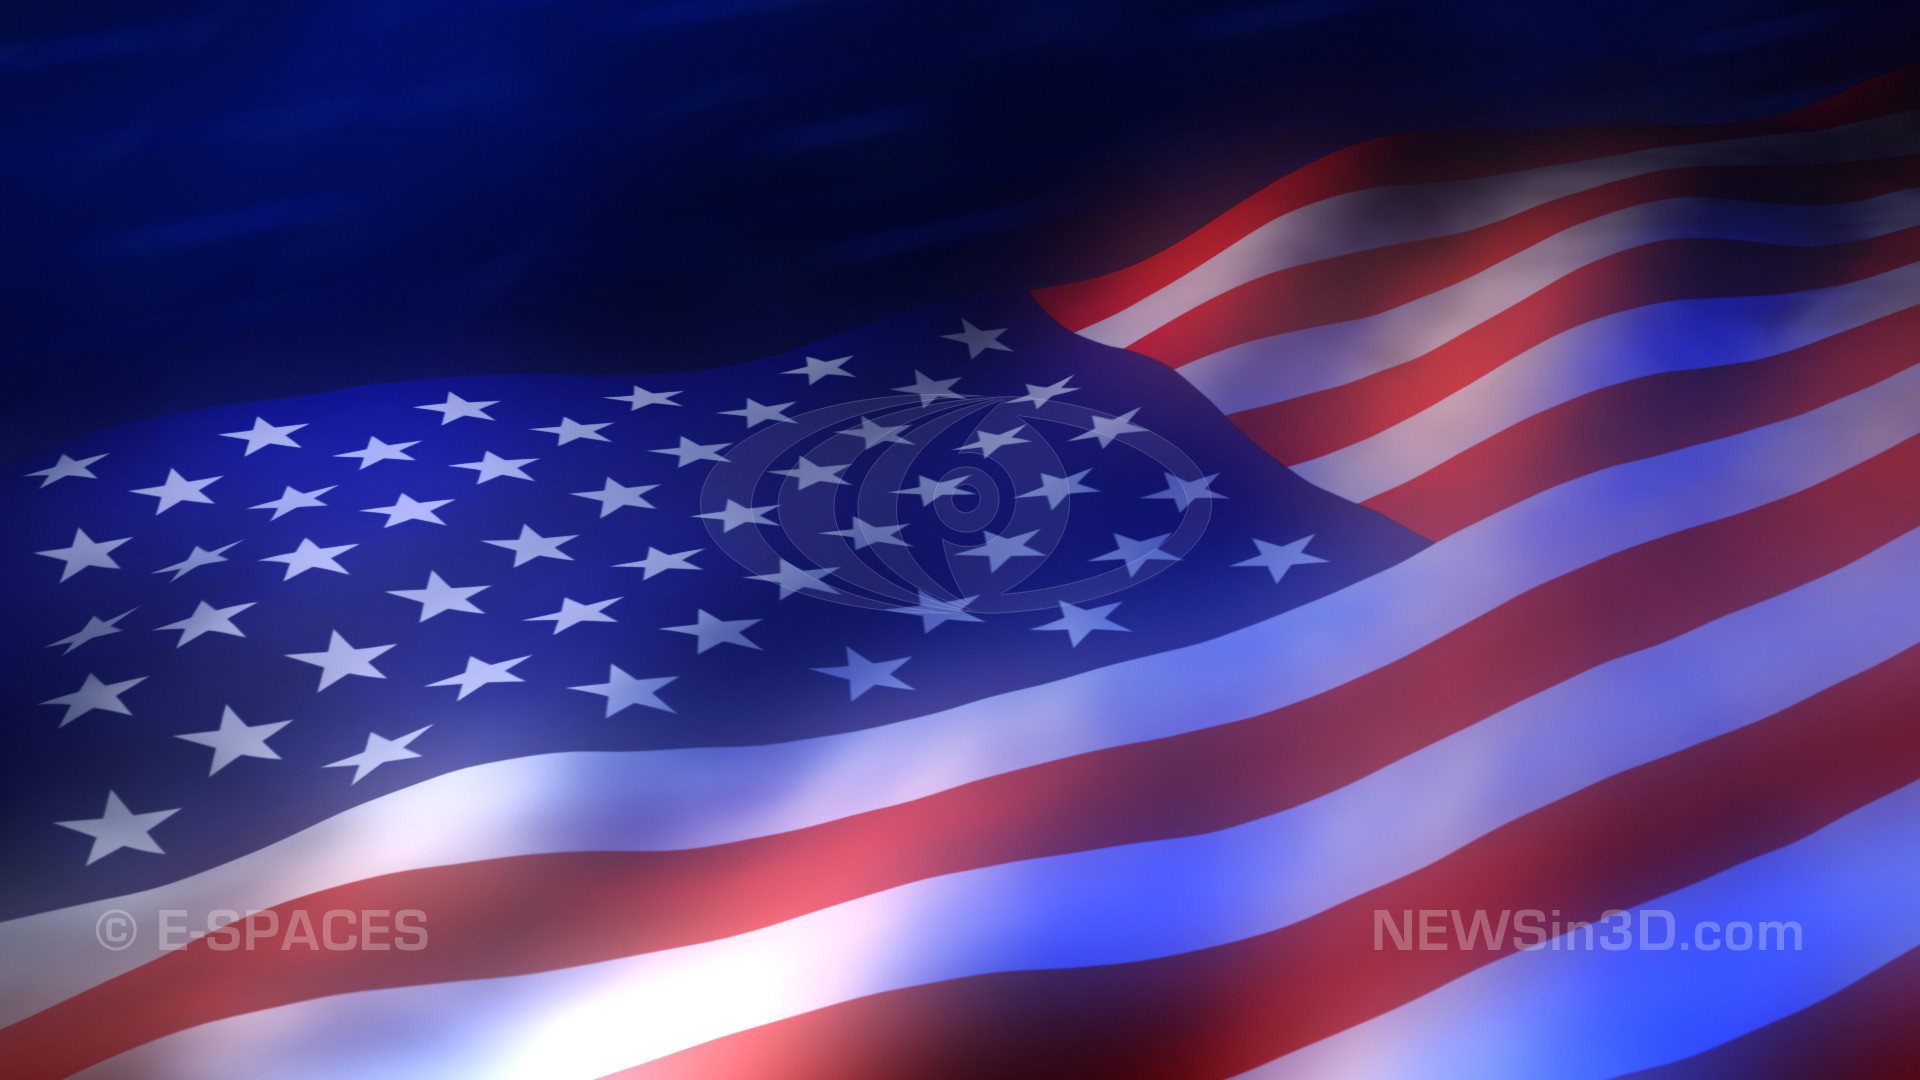 1920x1080 American flag animated background high definition preview still